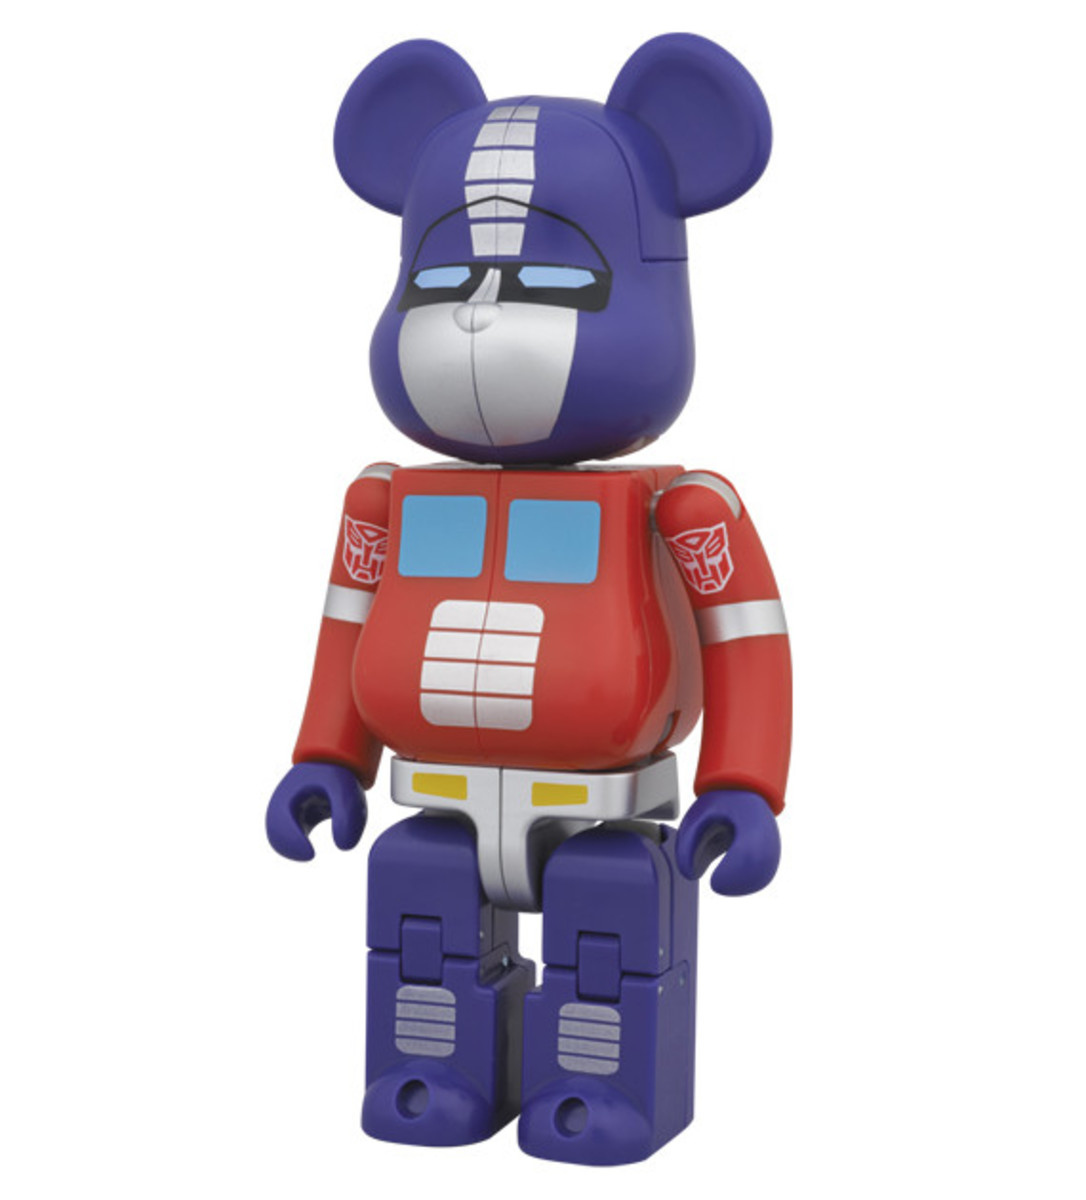 transformers-medicom-toy-transformable-bearbrick-200-percent-set-06